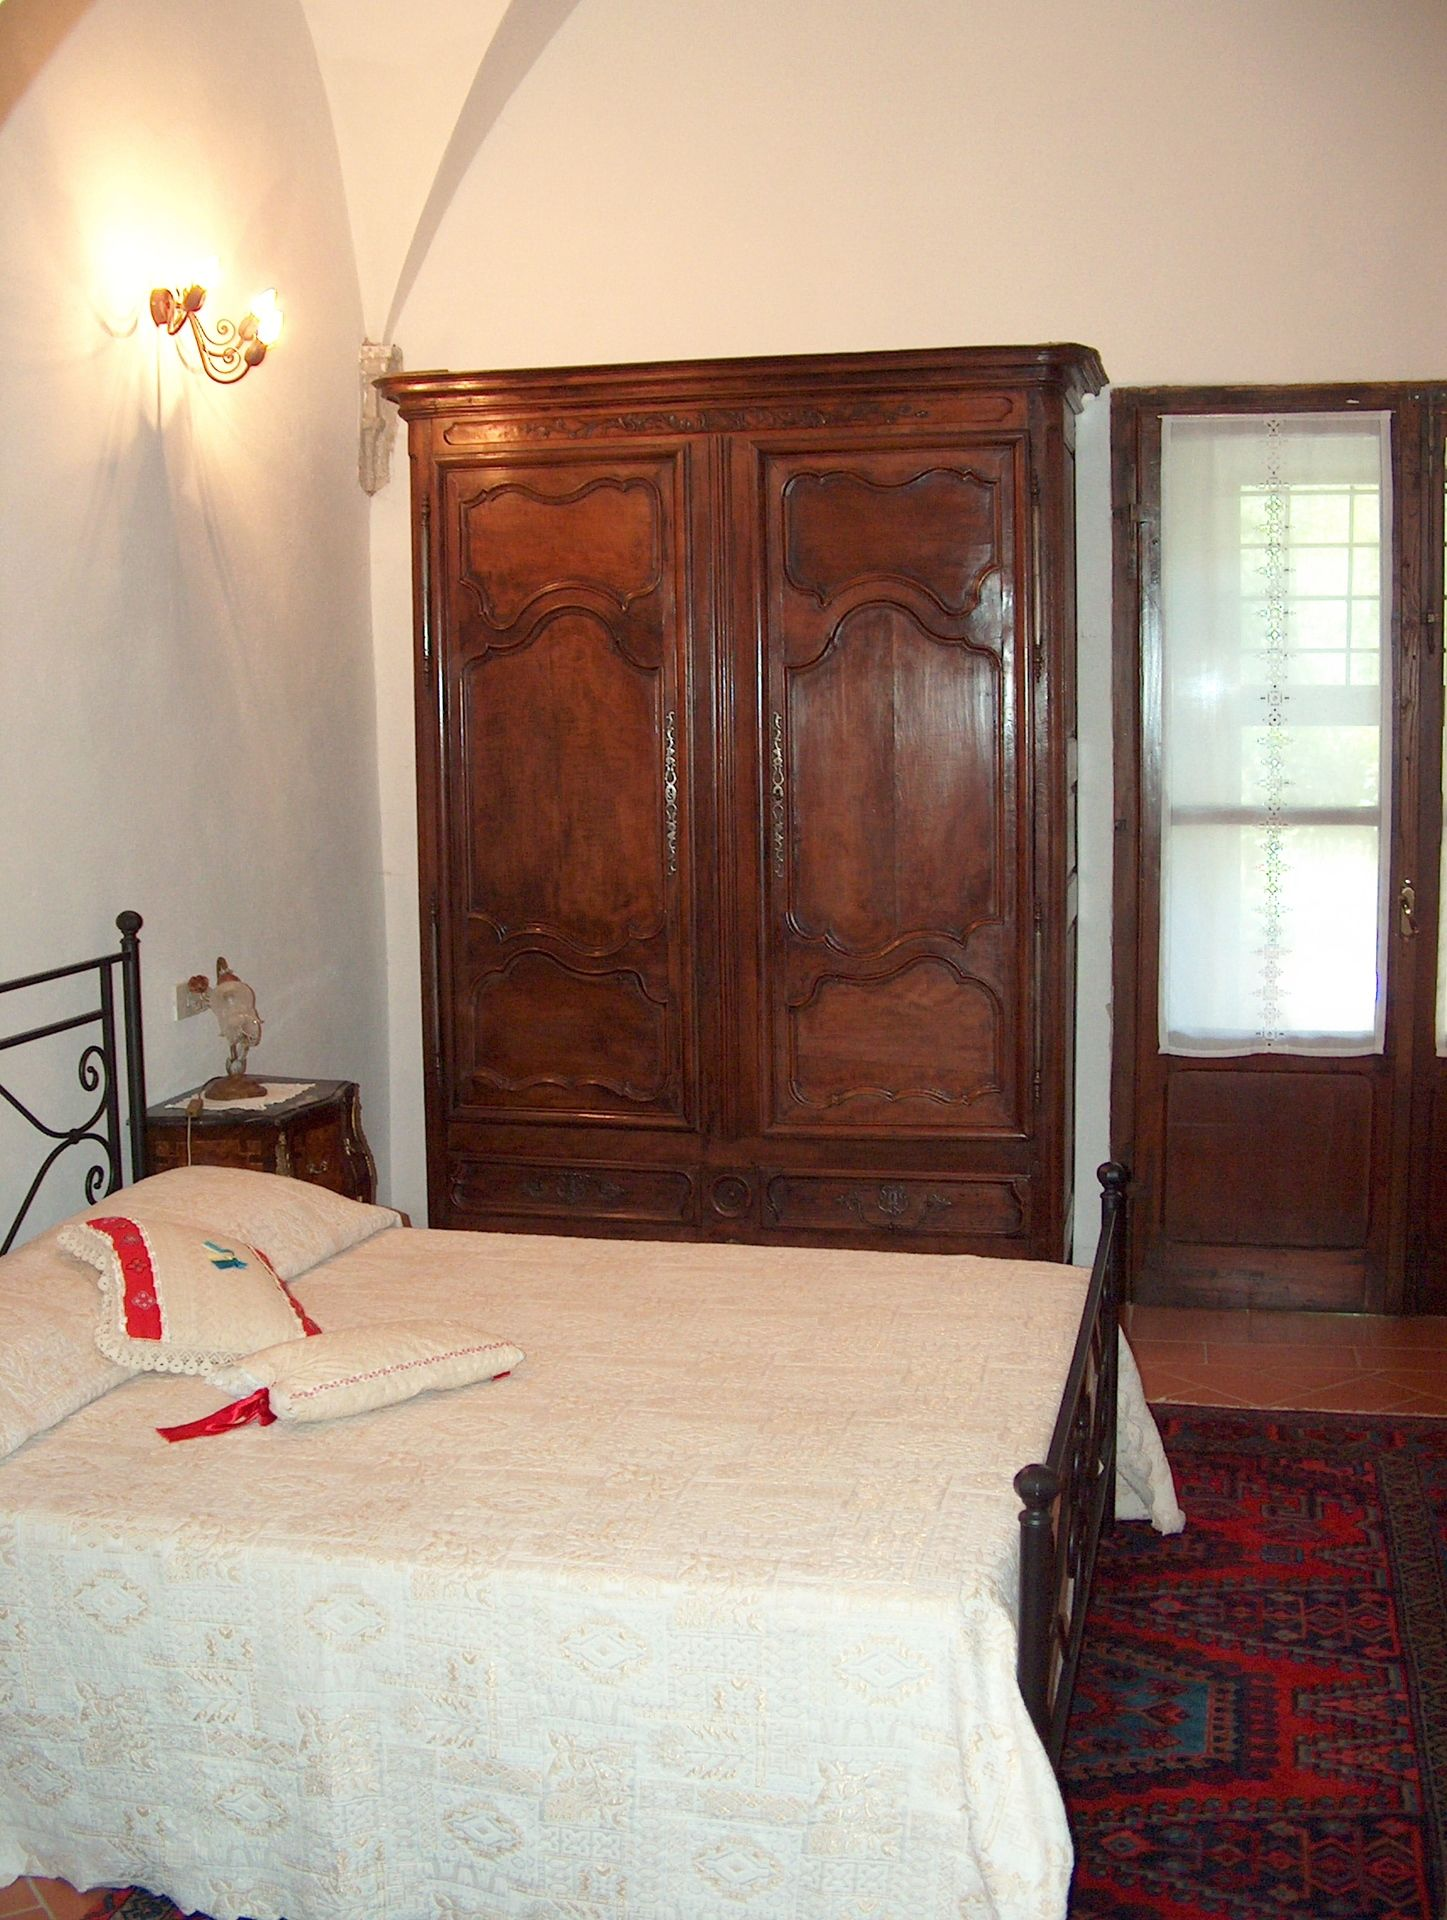 Villa Sant'Agnese, the first bedroom